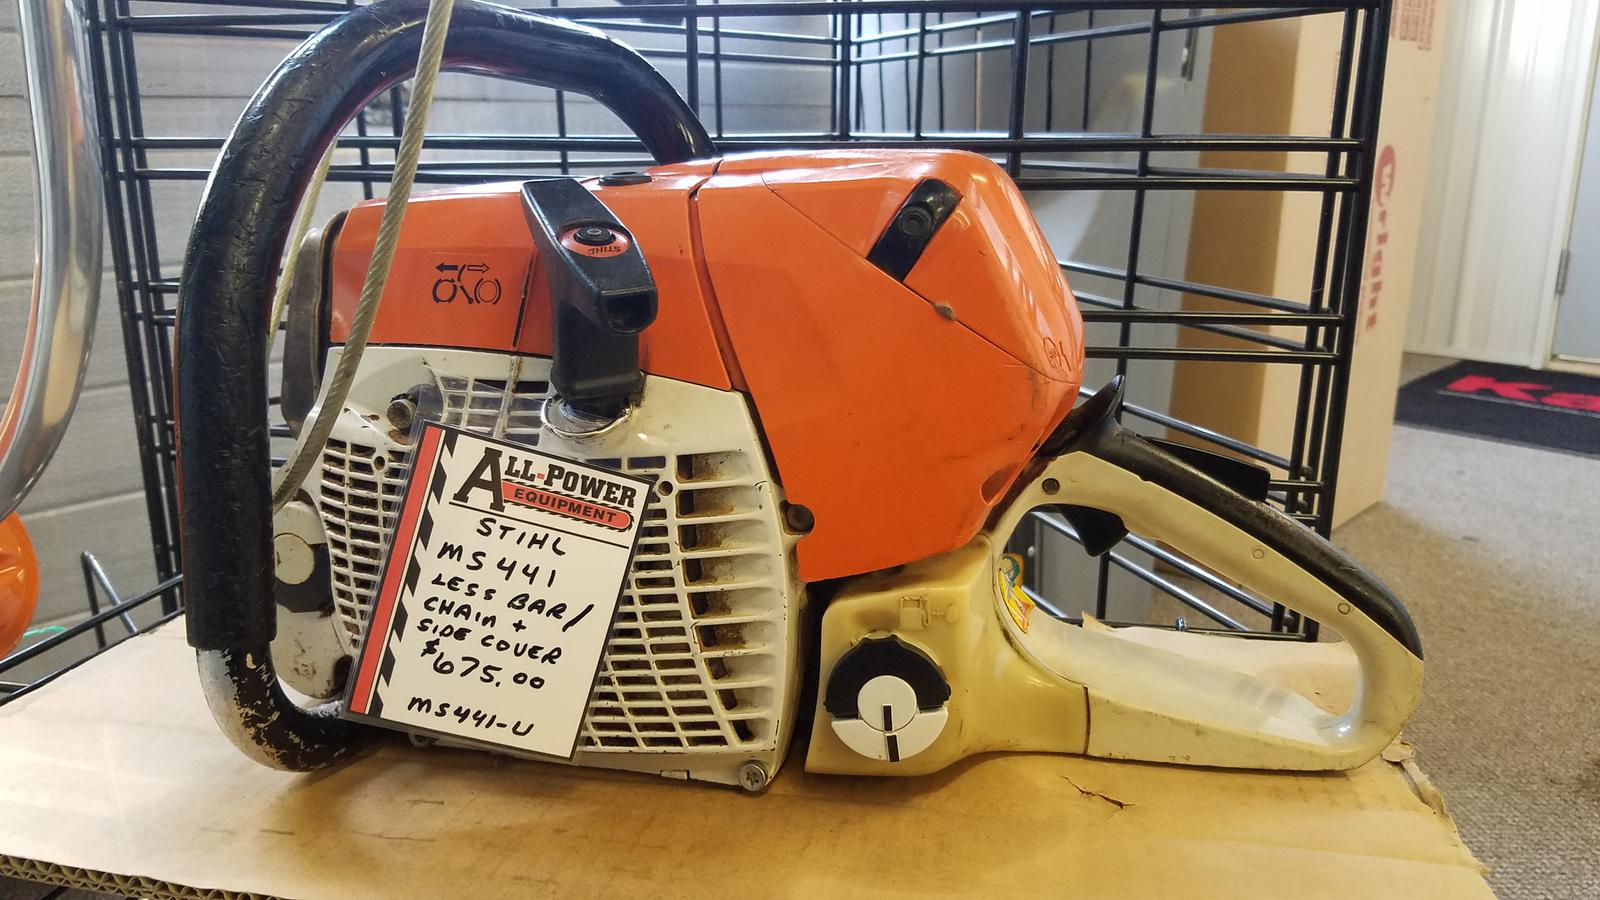 stihl ms441 for sale in kankakee, il. all-power equipment kankakee